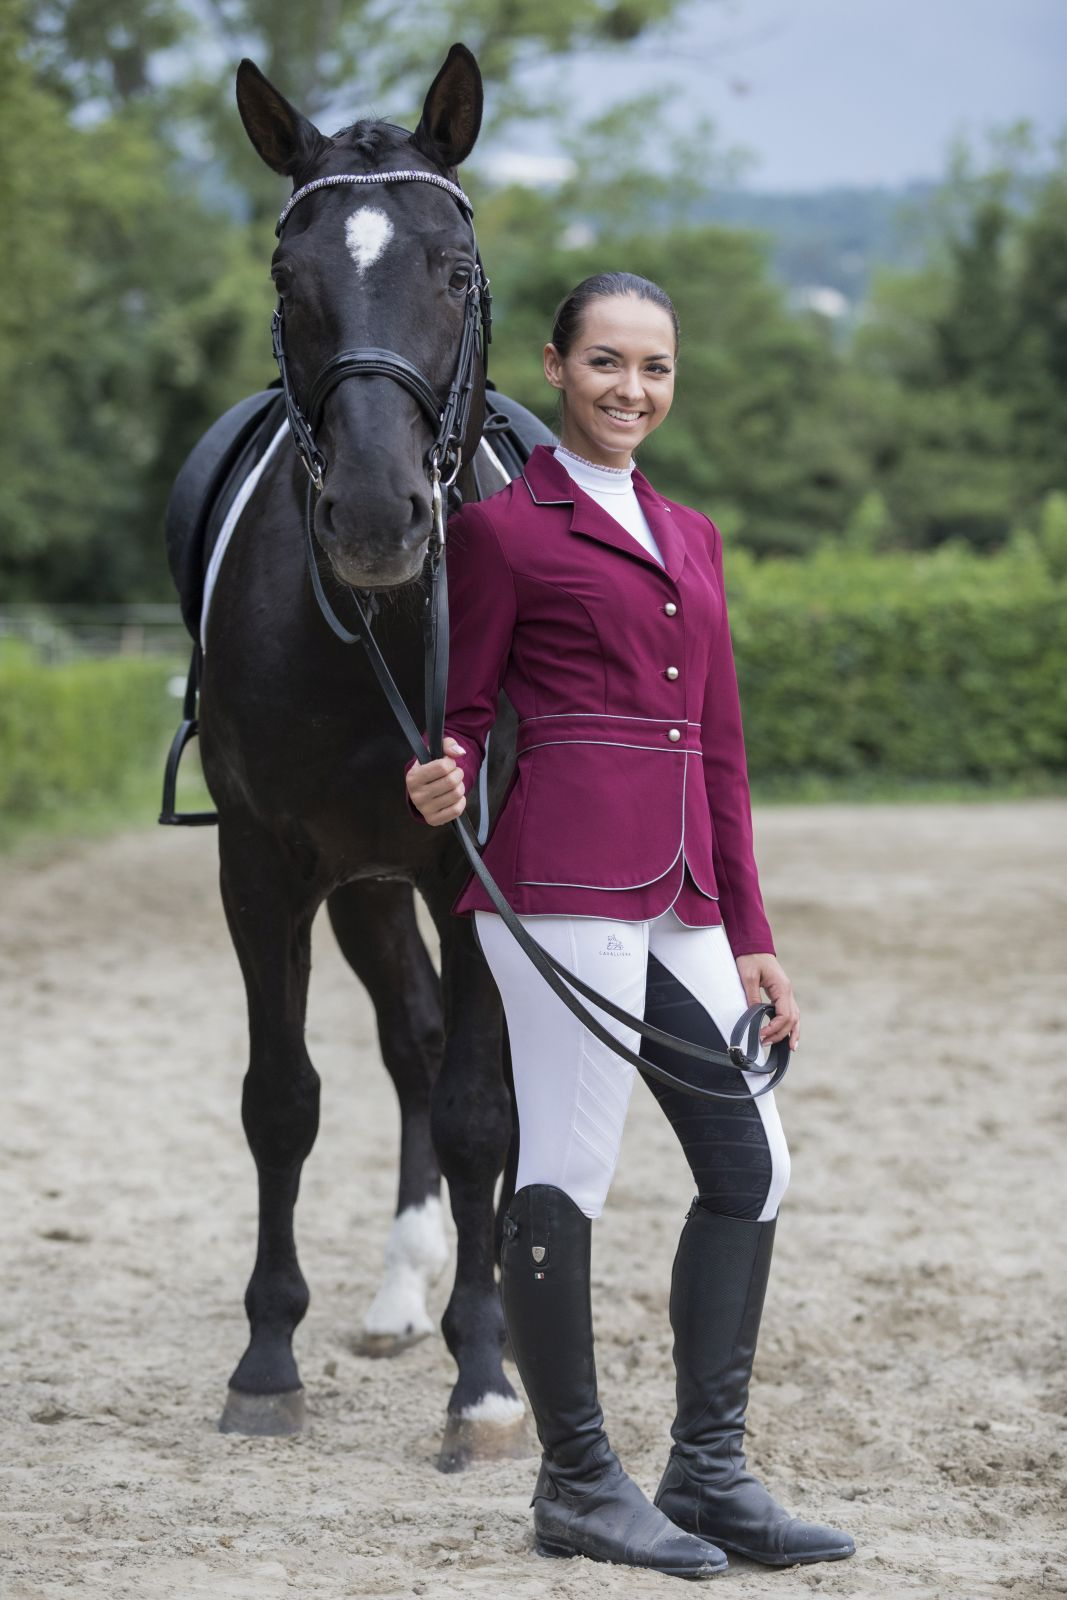 Cavalliera Riding Jacket Prime Equestrian Outfits Riding Jacket Show Jackets [ 1600 x 1067 Pixel ]